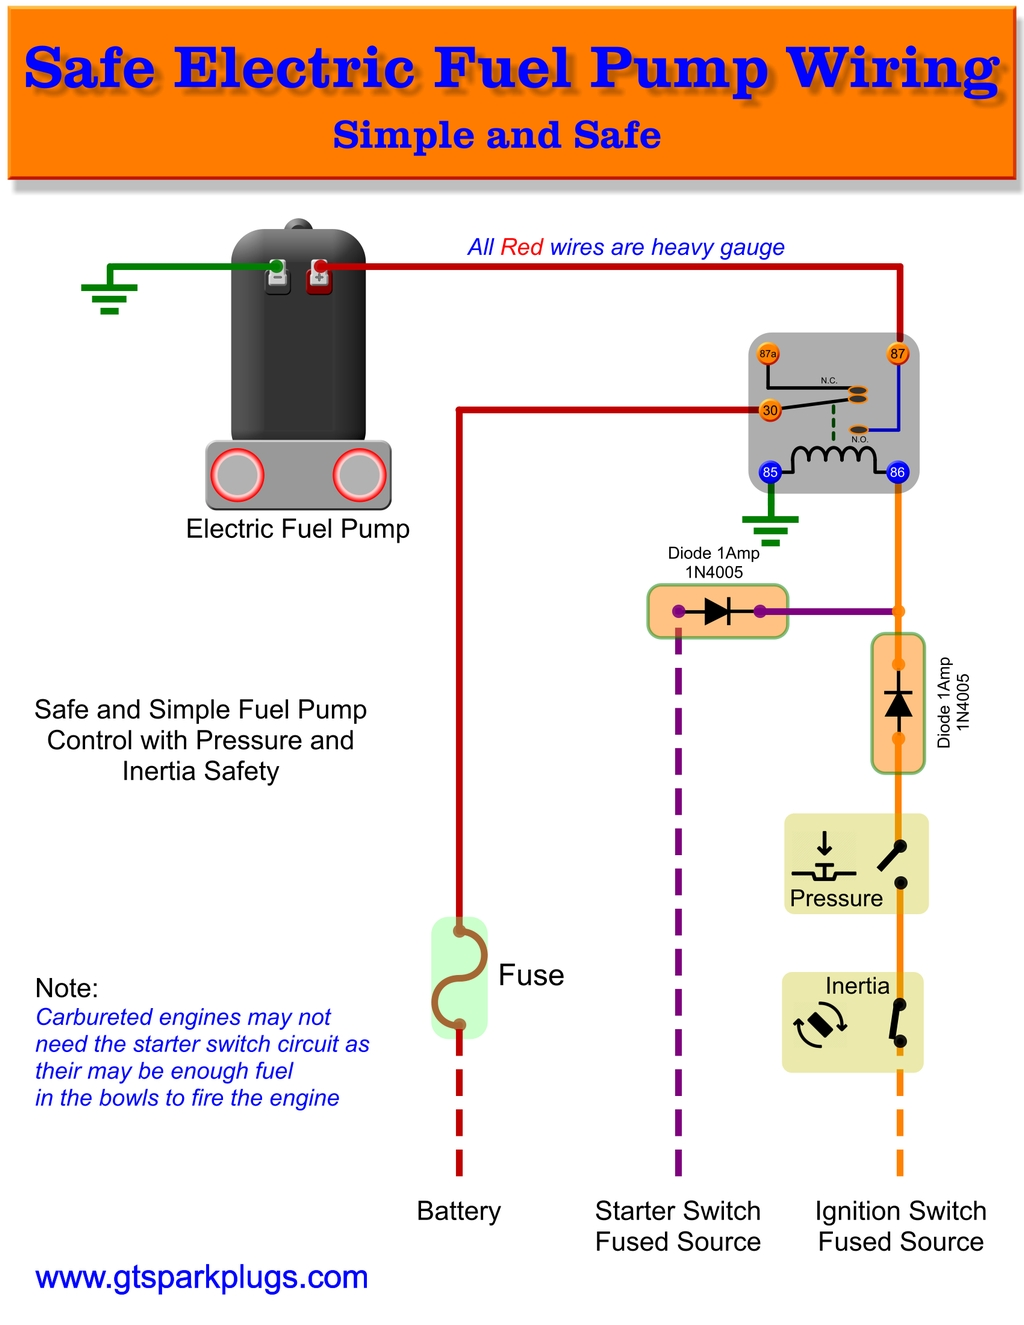 Basic Safe Electric Fuel Pump Wiring